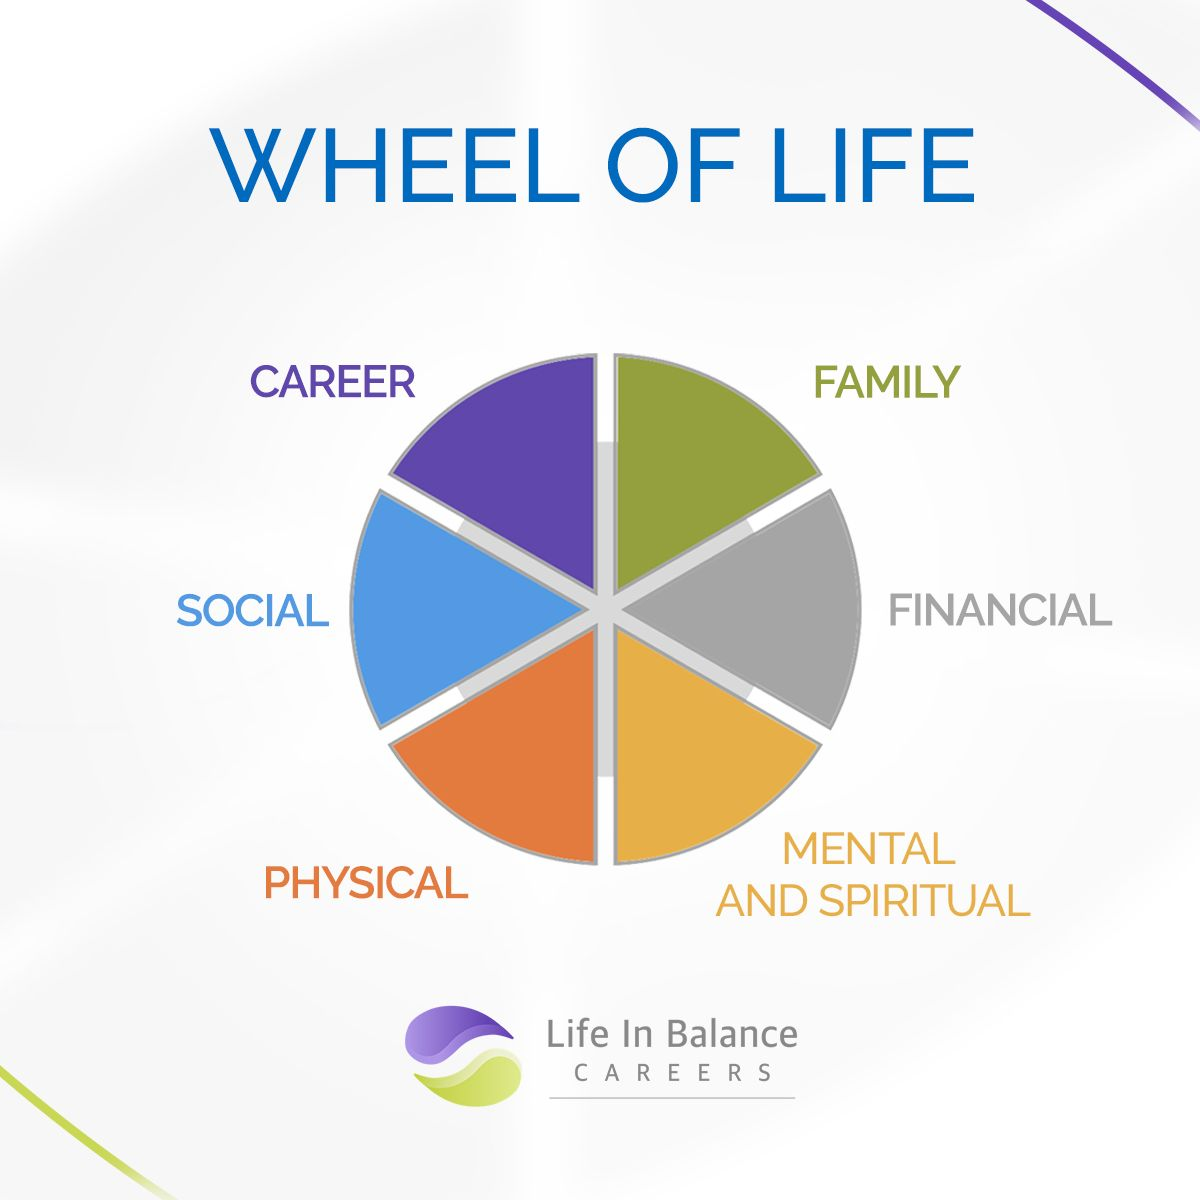 Have You Ever Done The Wheel Of Life Exercise To See How Satisfied You Are With Different Aspects Of Your Lif Wheel Of Life Life Balance Wheel Mindfulness Life